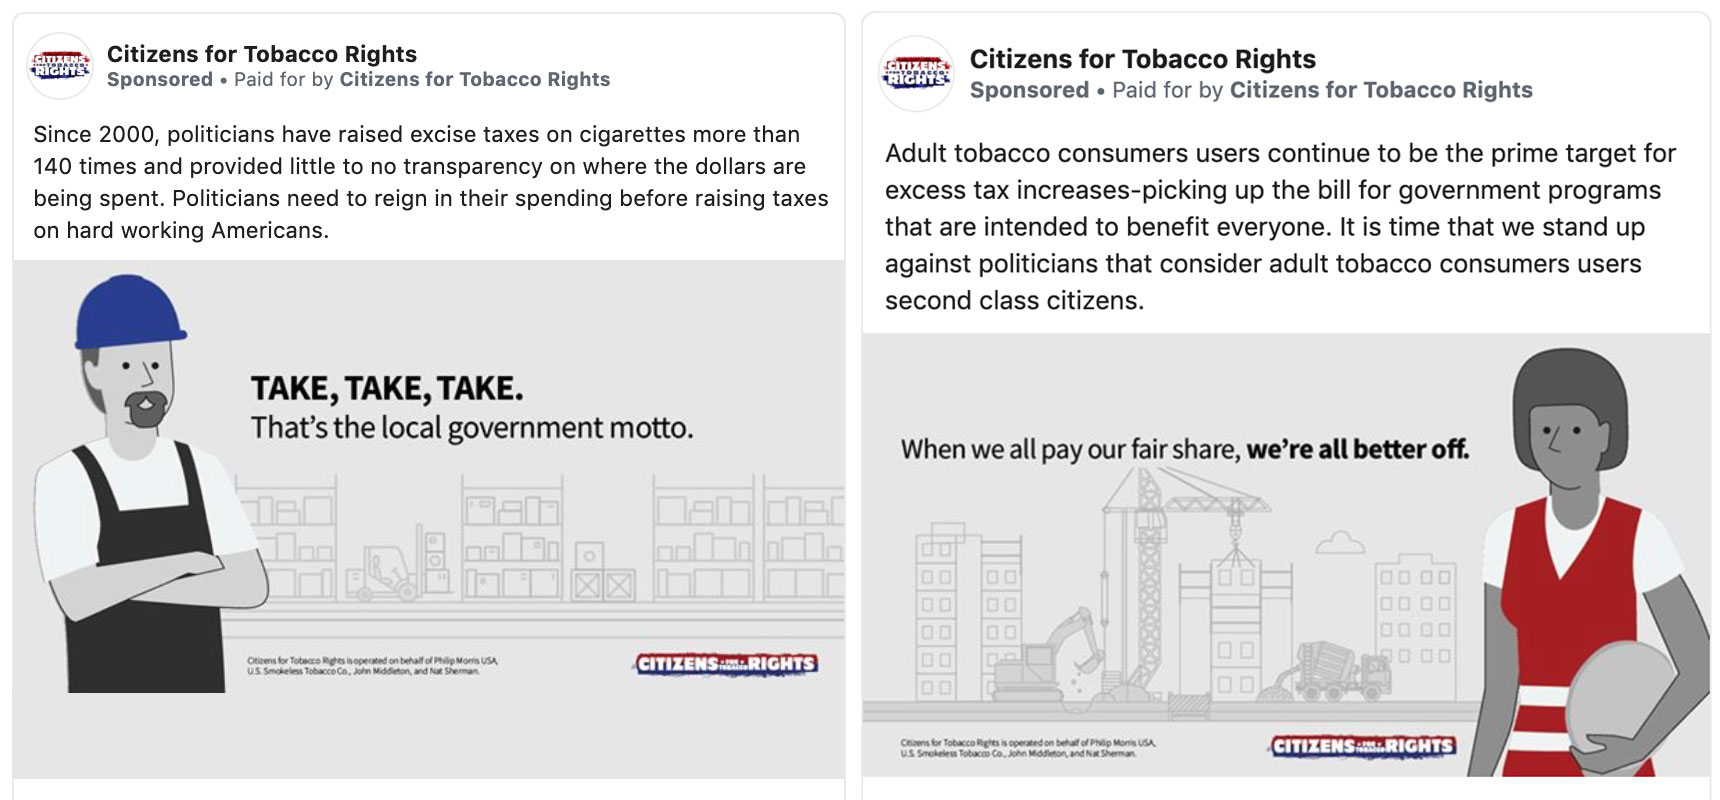 Citizens for tobacco rights